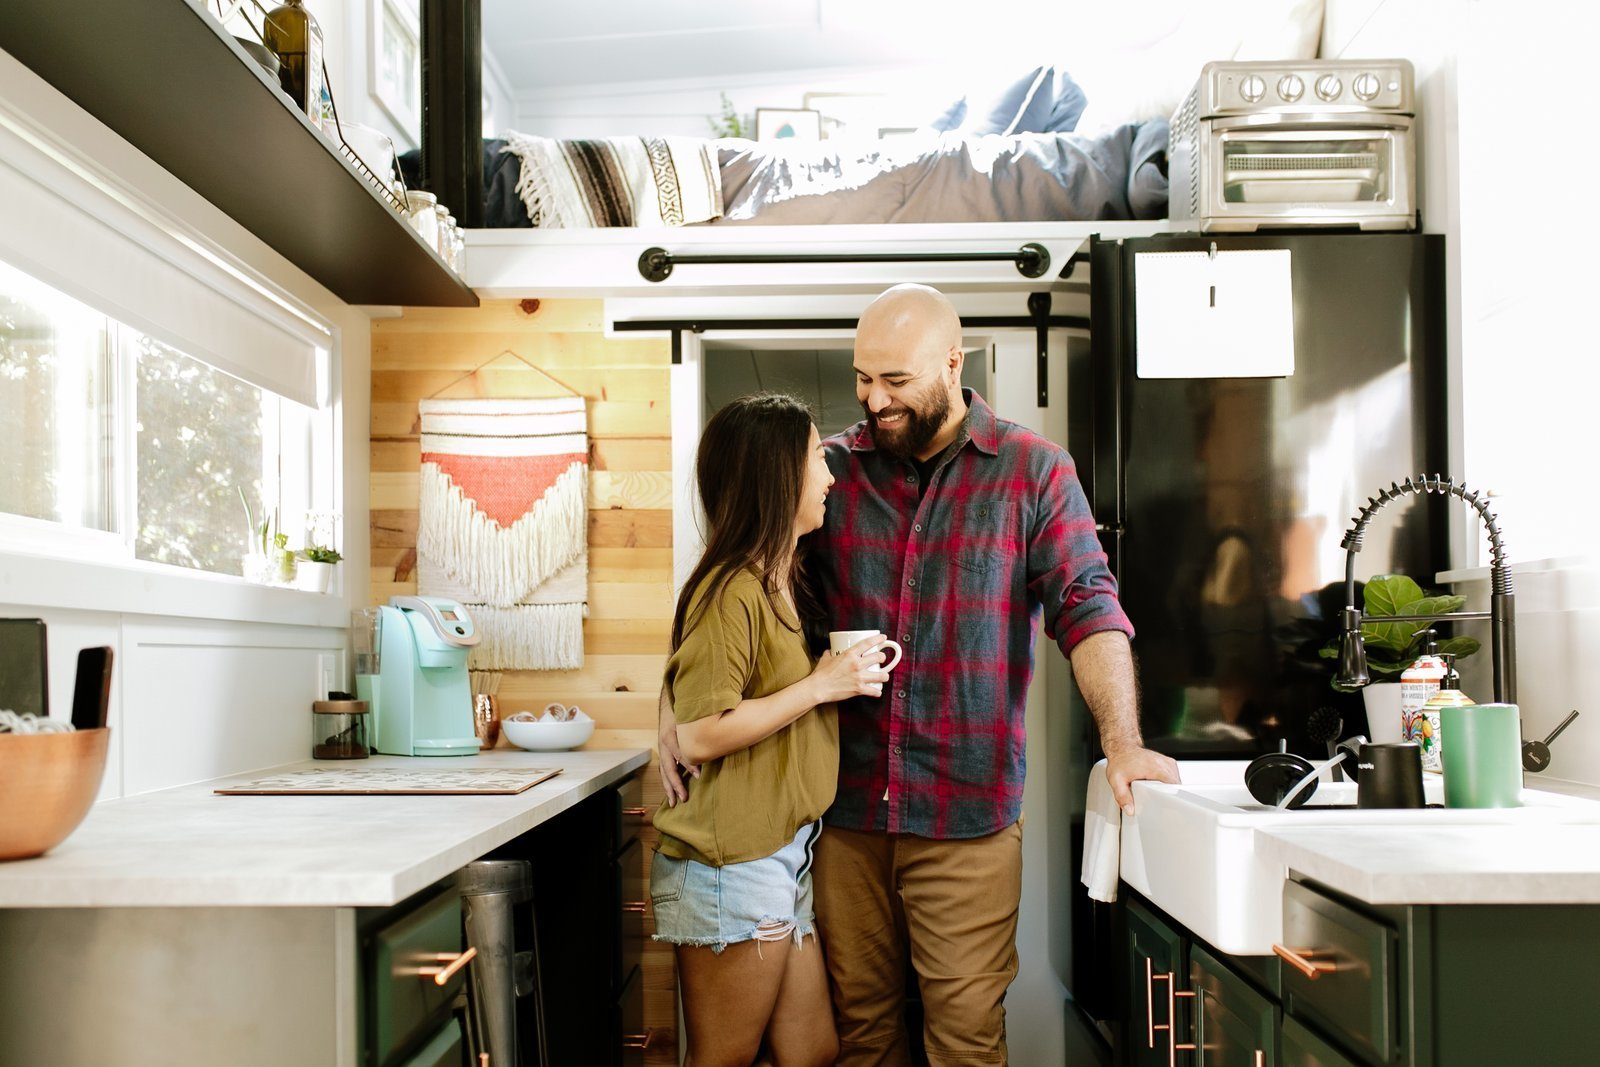 Saul and Trysh Martinez stand in the kitchen of the 250-square-foot home they built for themselves to escape mortgage and rent payments on top of their student loans.  Photo 3 of 12 in 12 Inspiring Tiny Homes That Were Entirely DIY'ed from Budget Breakdown: Two Travel Therapists Build a Tiny Home-on-Wheels for $24K